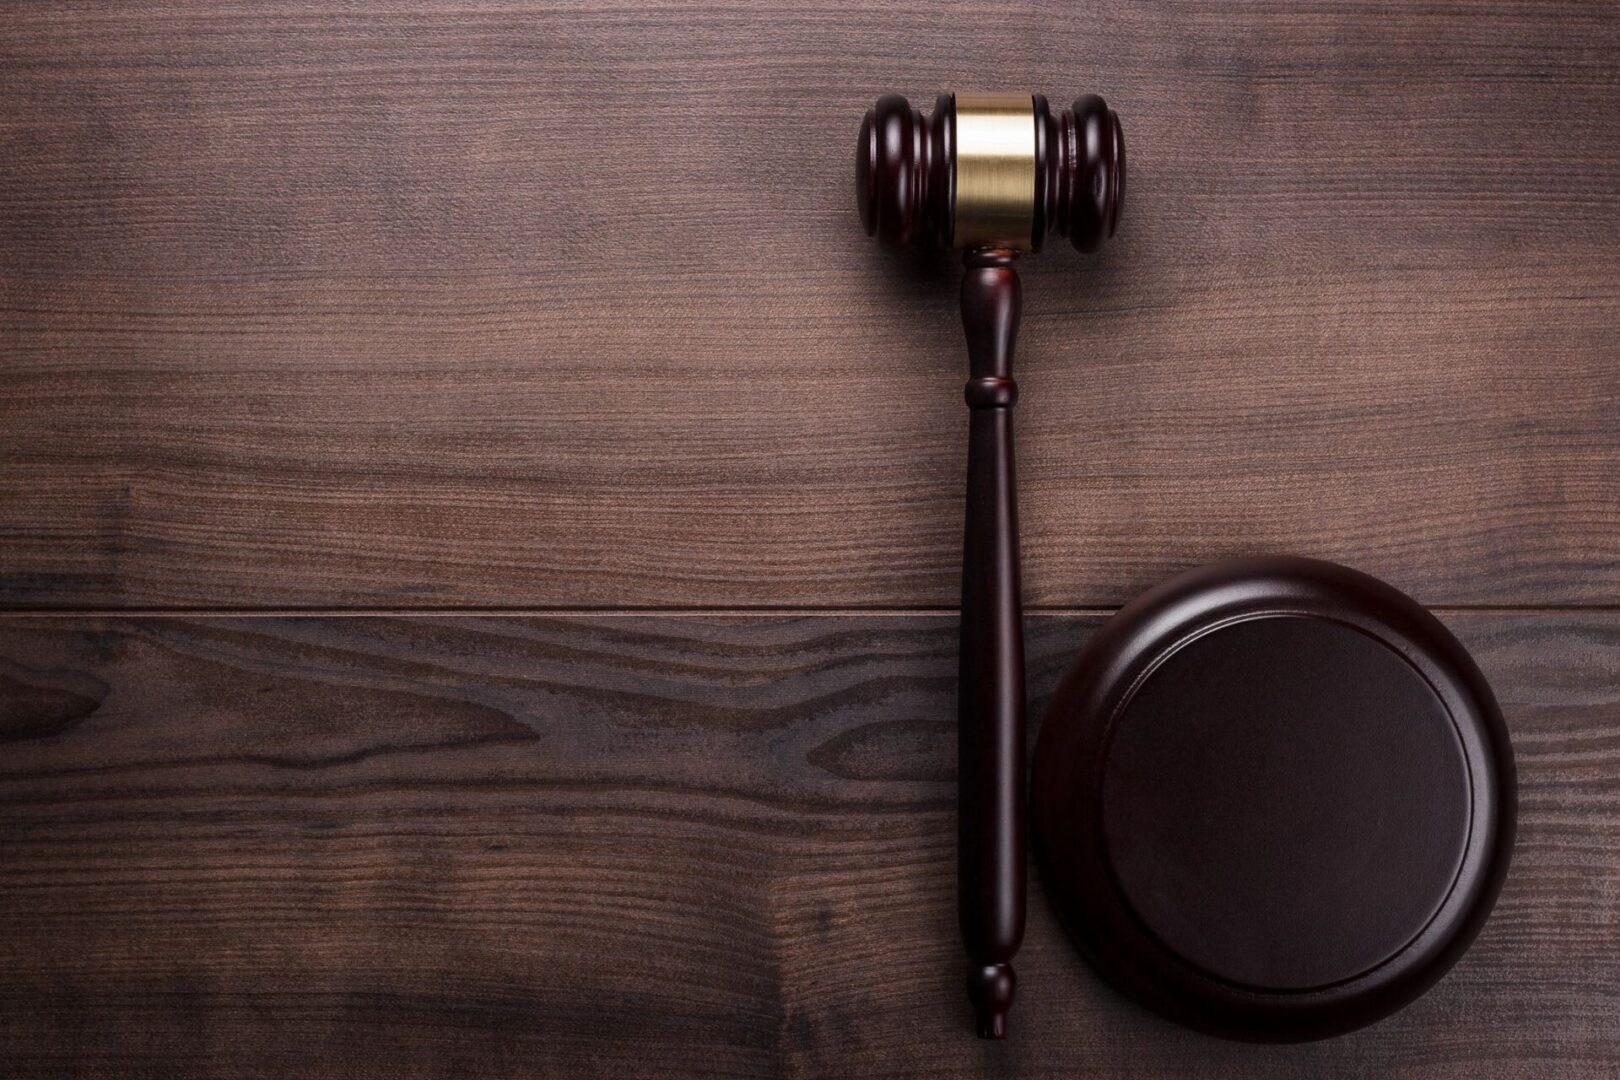 trial lawyer and has experienced the hard work and diligence that it takes